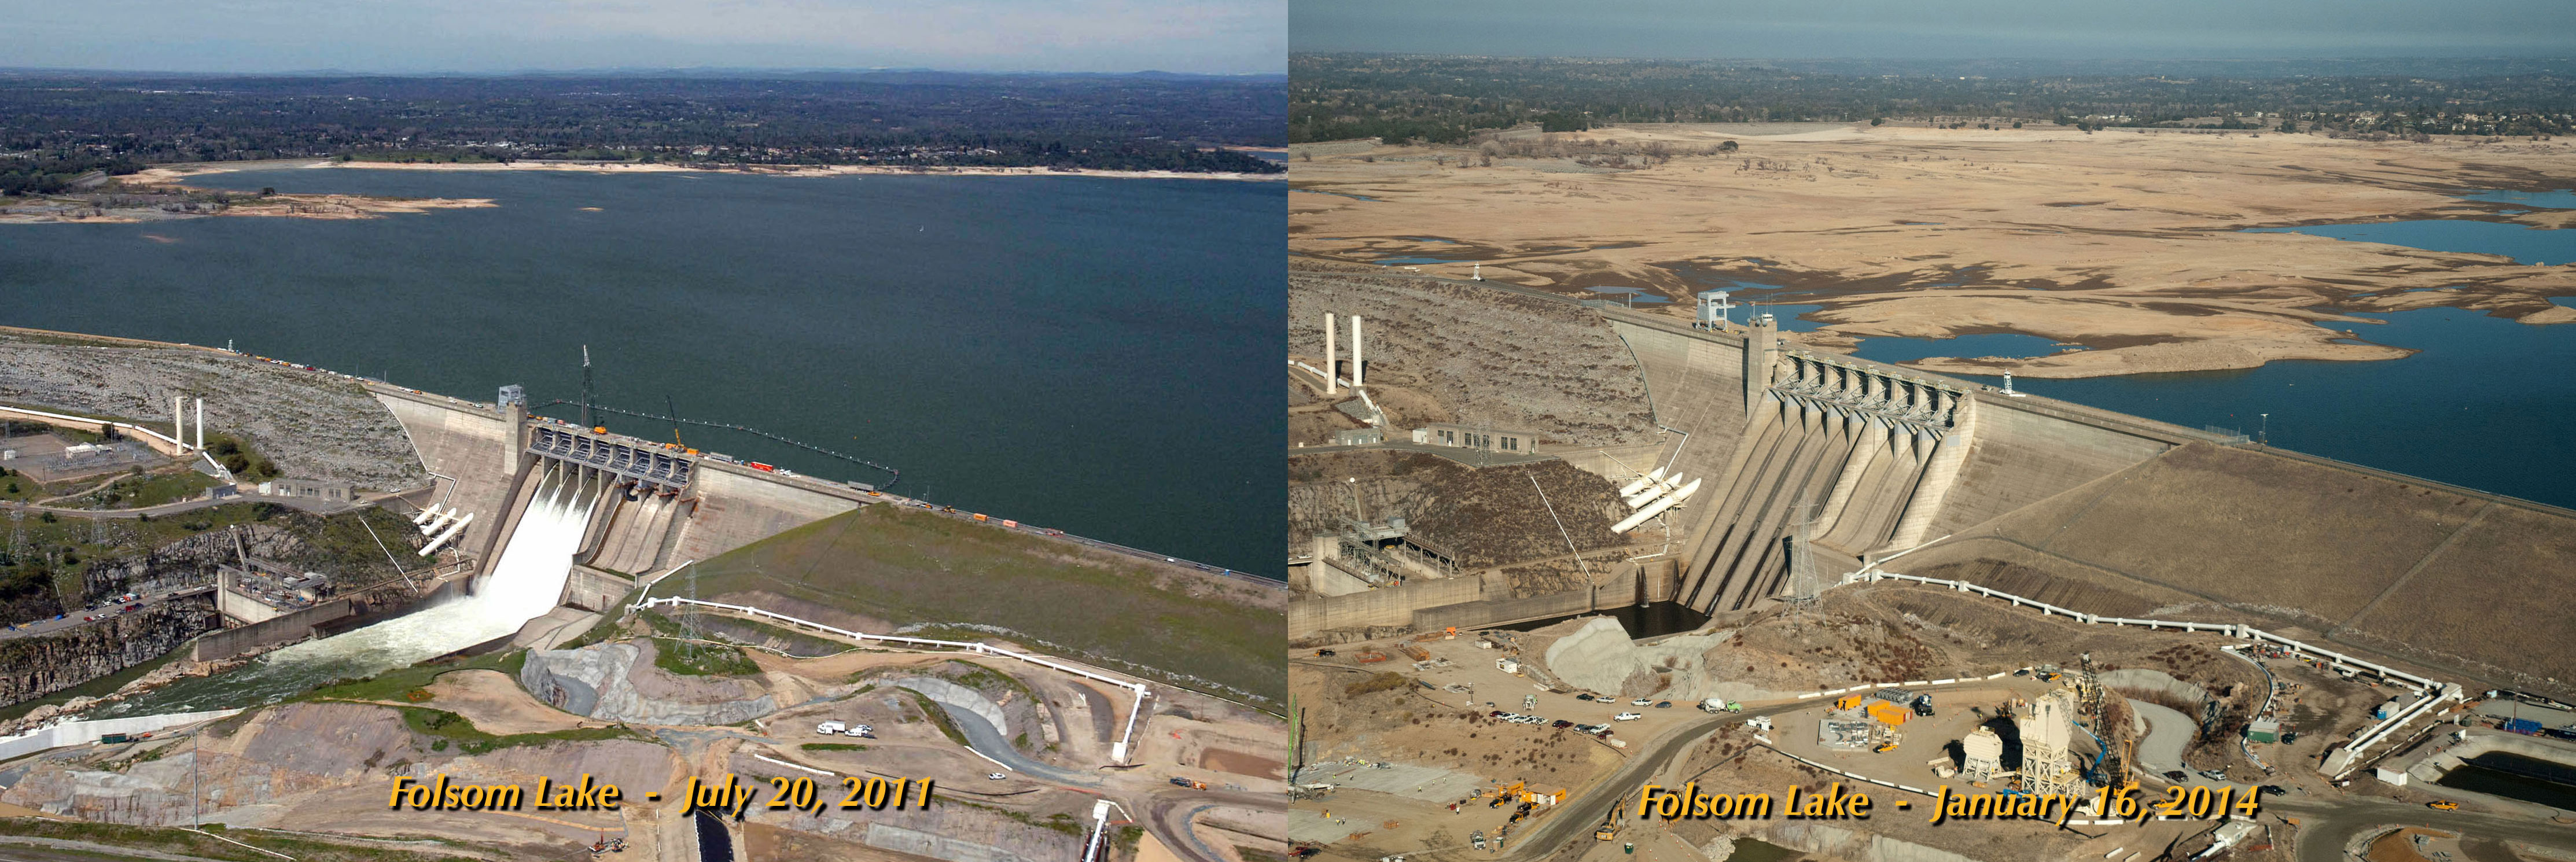 Picture of the Folsom Lake in 2011 and in 2014. The water level difference is terrifying and results from the historic drought in California. Photo: NASA, apocalyptic drought california, terrifying drought california photo, california drought gif, apocalyptic california drought gif, gif of california drought, Severity of California's Terrible Drought in one gif, terrifying california's drought in one image, this gif shows how terrible california drought really is, Gif showing the extend of the historic California's drought of 2014, Terrifying GIF Shows Severity Of California Drought! OMG! This GIF shows How Bad California's Drought Really Is! And It will Blow Your Mind!, california drought, california drought gif, california drought gravity, severity of california drought folsom lake, august 2014, strange sounds